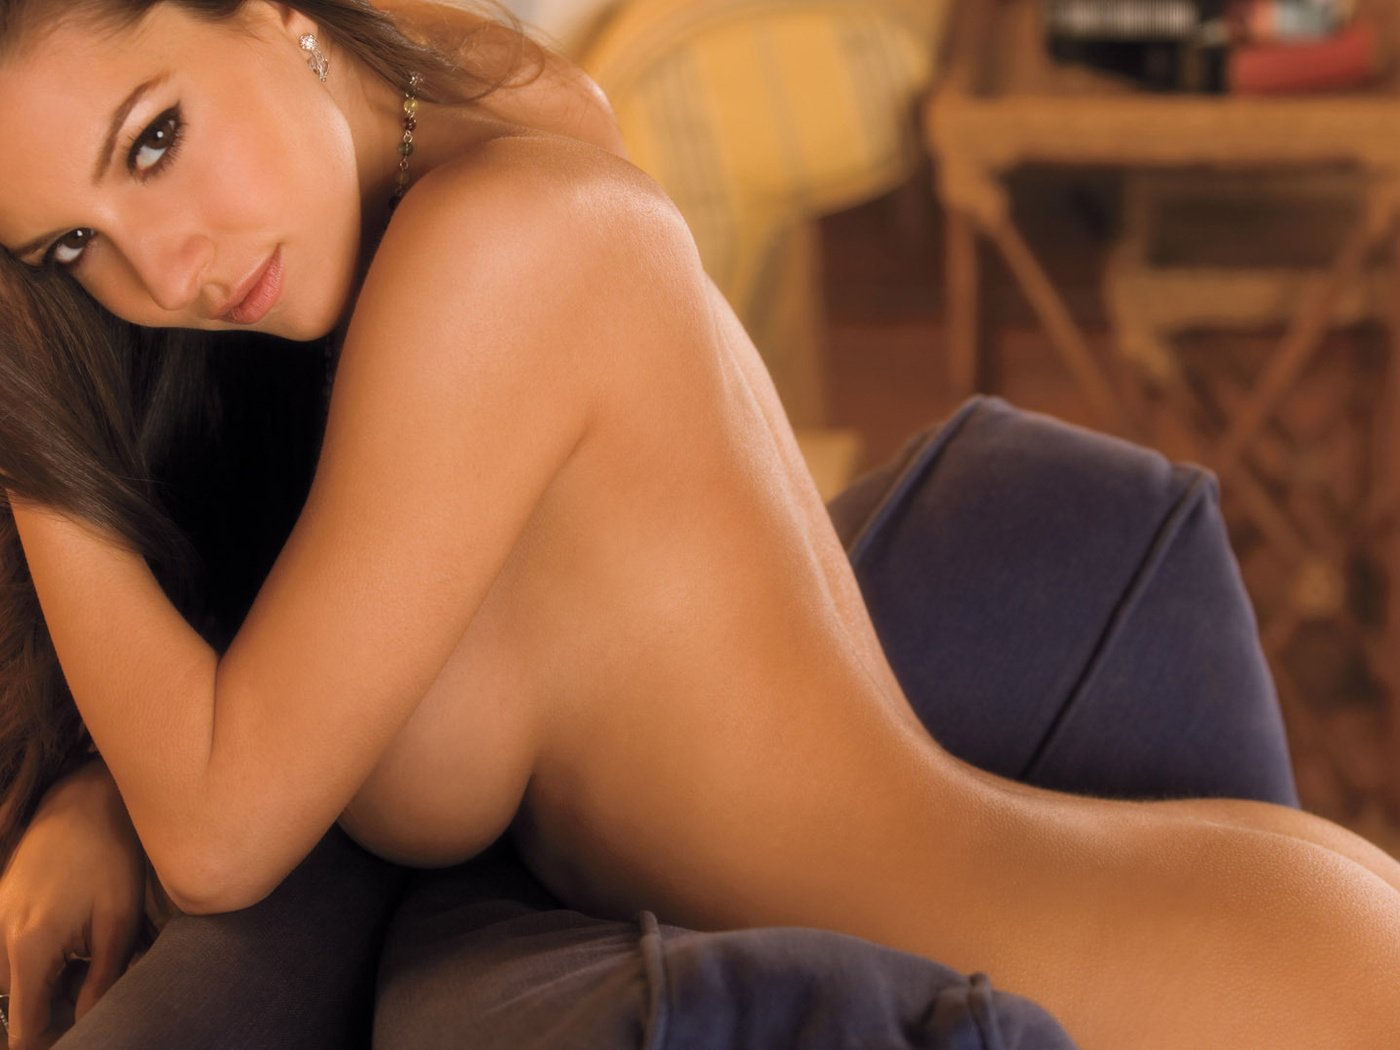 Hot sexiest woman ever naked